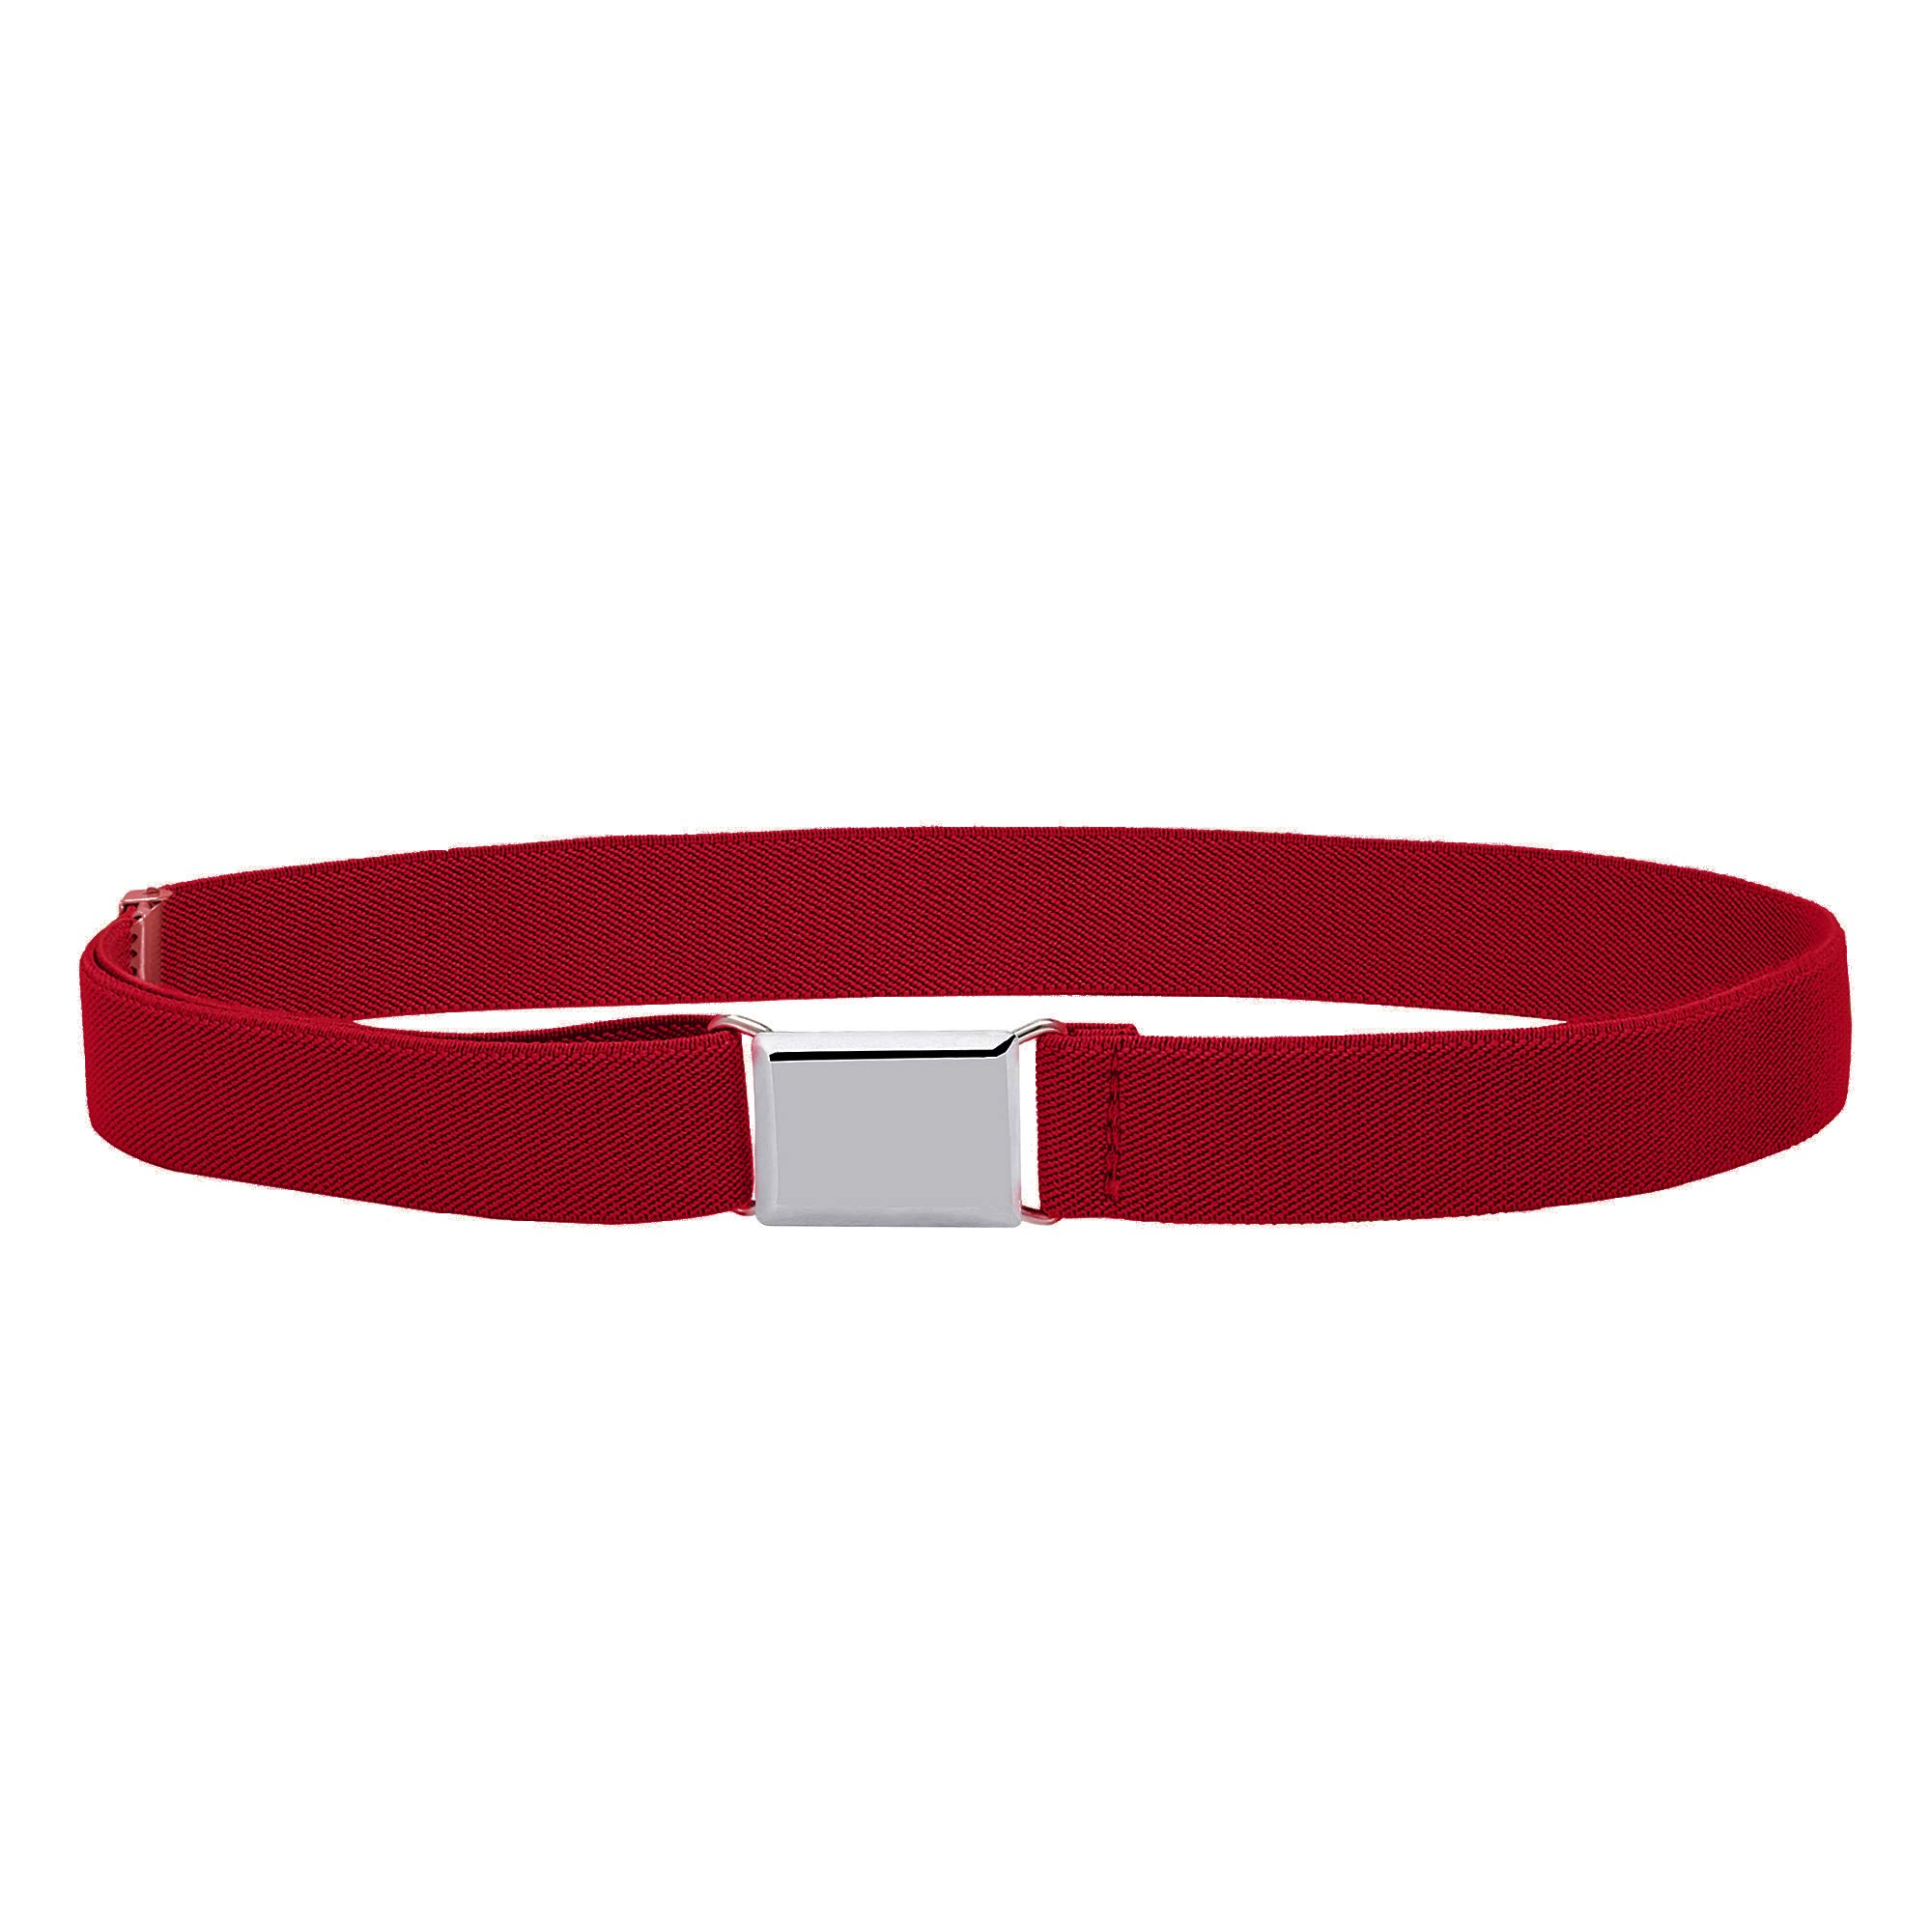 Buyless Fashion Kids and Baby Adjustable and Elastic Dress Stretch Belt with Silver Buckle - 5101-Red